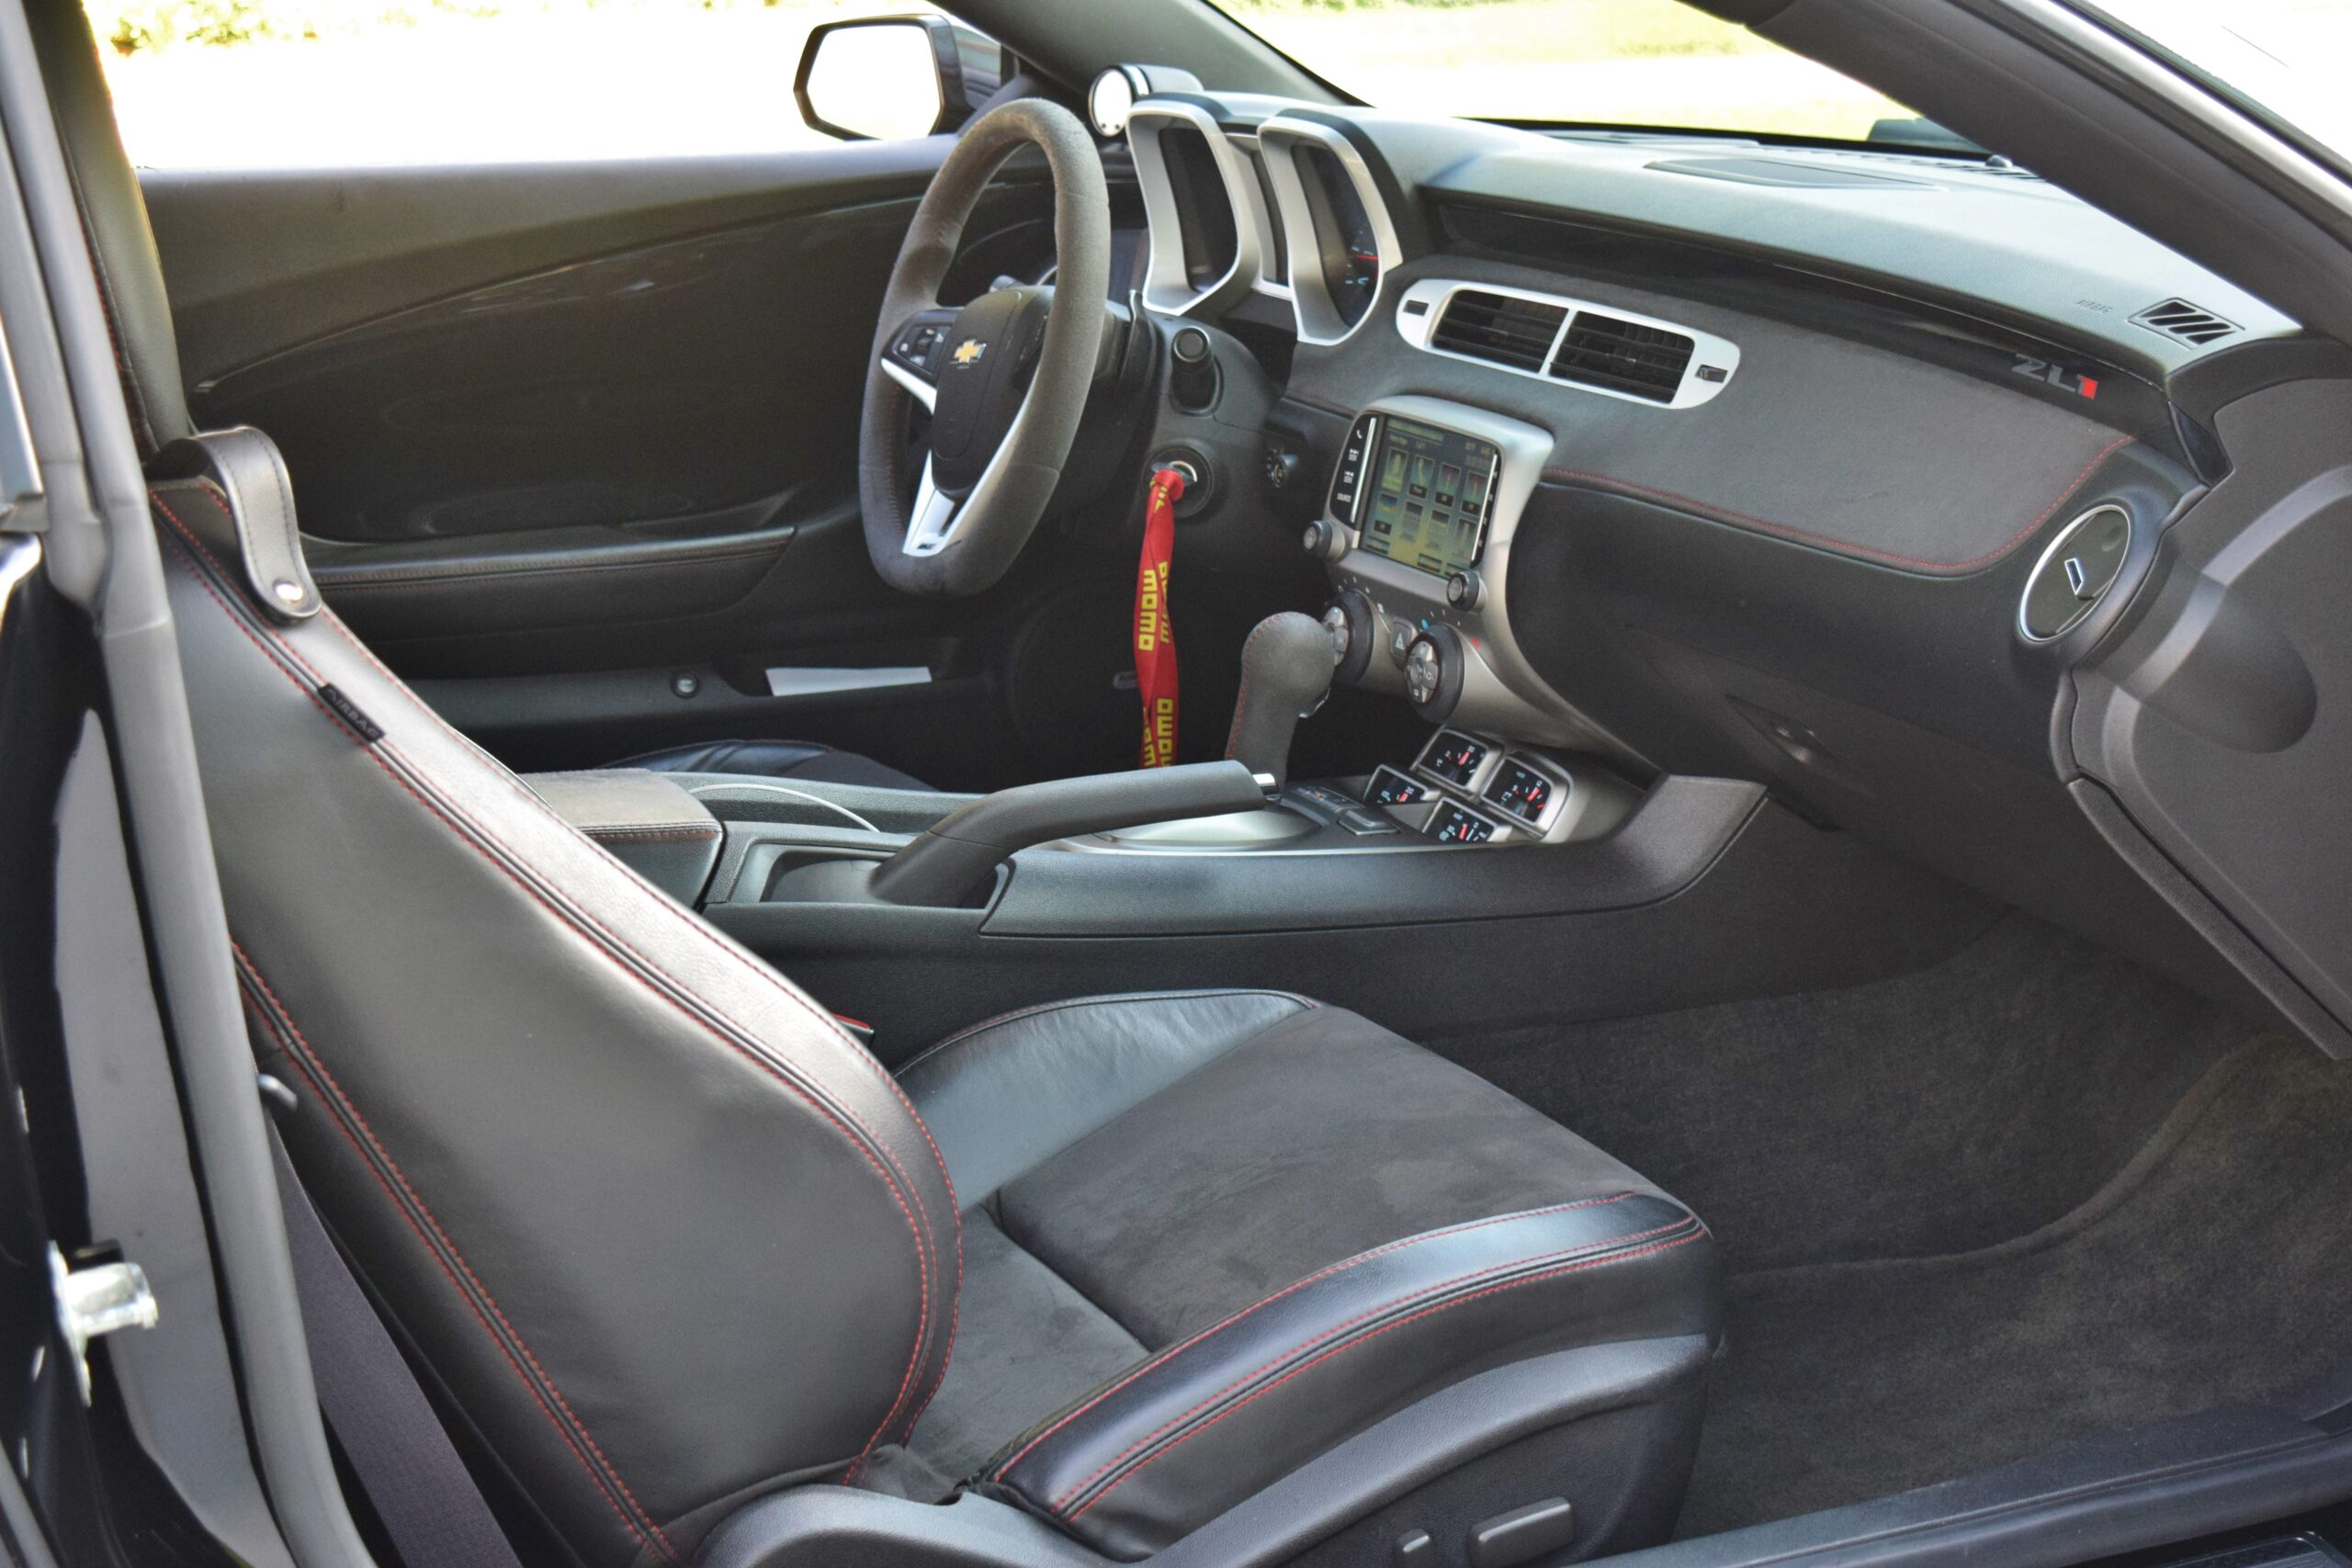 2013 Chevrolet Camaro ZL1 880 HP/LSA SUPERCHARGED – EASY 9 SEC STREET CAR – OVER $95,000 INVESTED